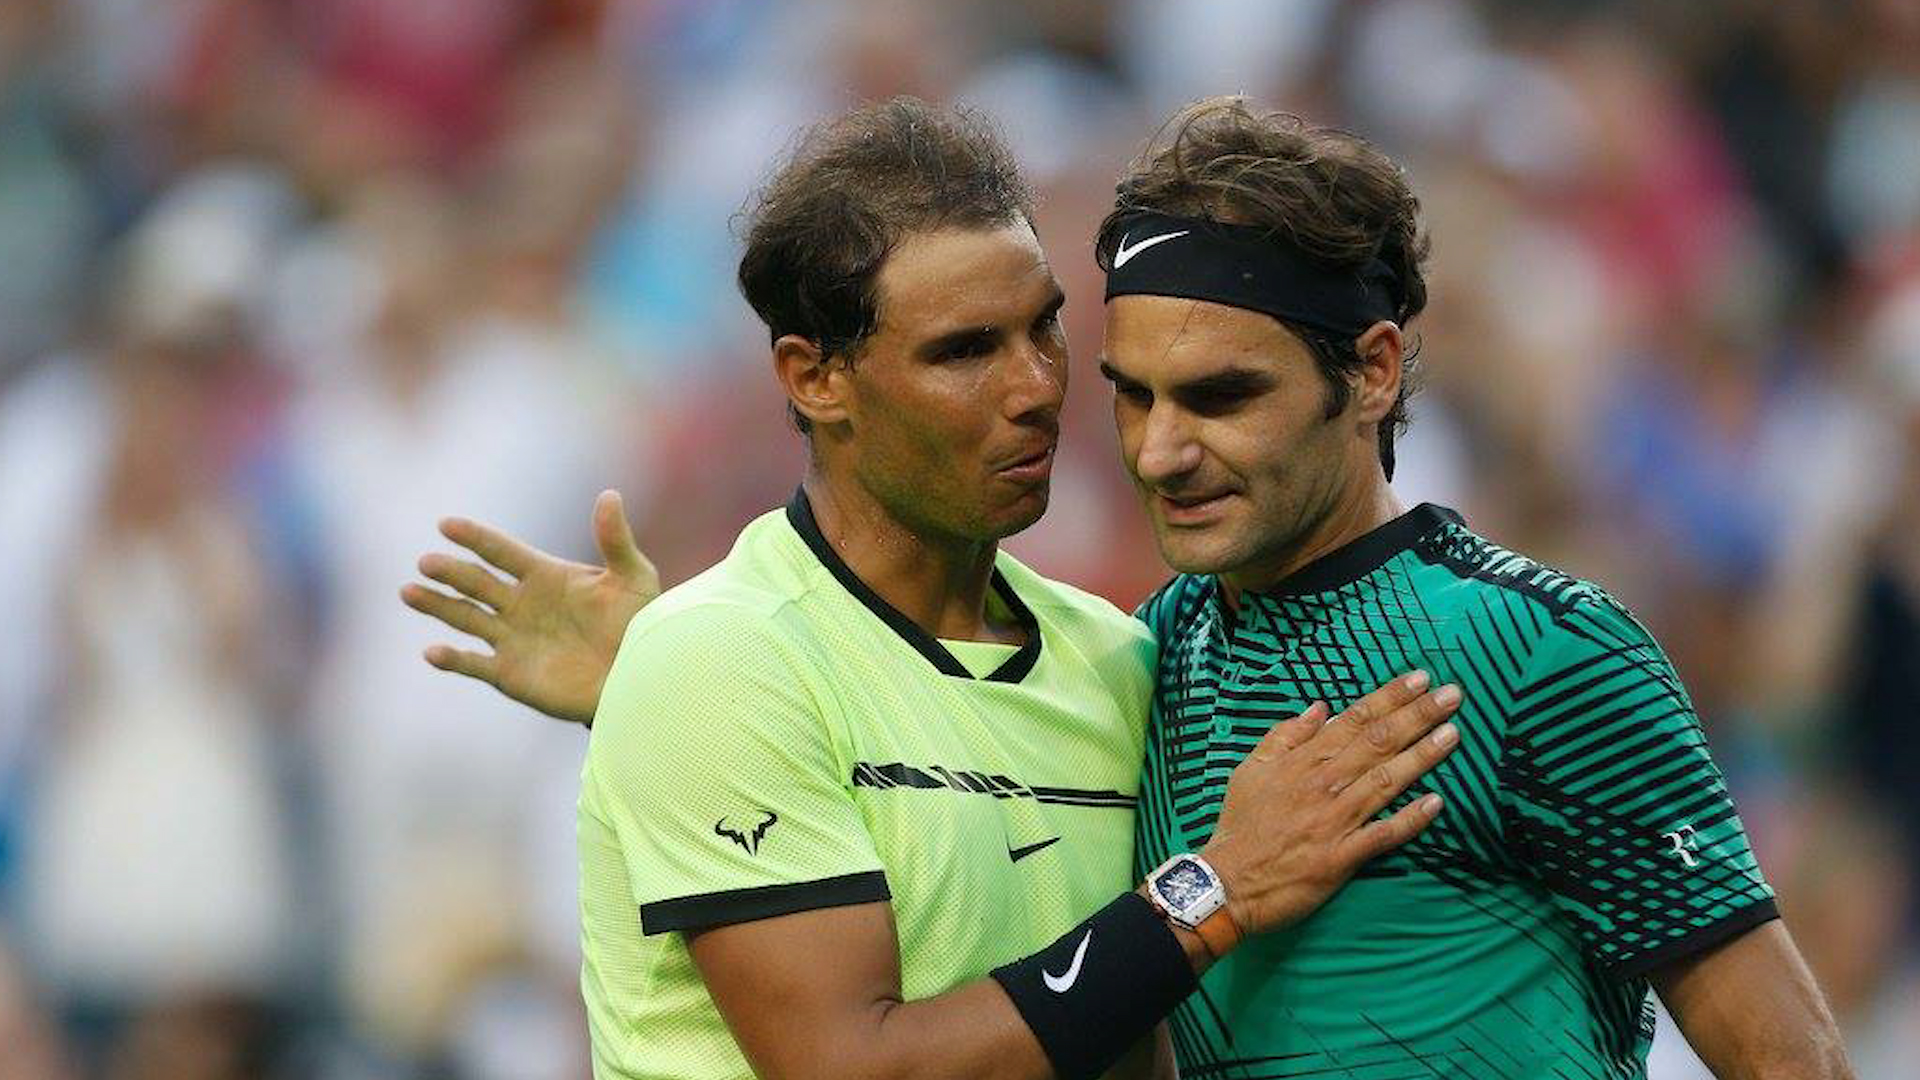 Federer on Game-Changer-Kyrgios on Character-Ivanovic's New Role